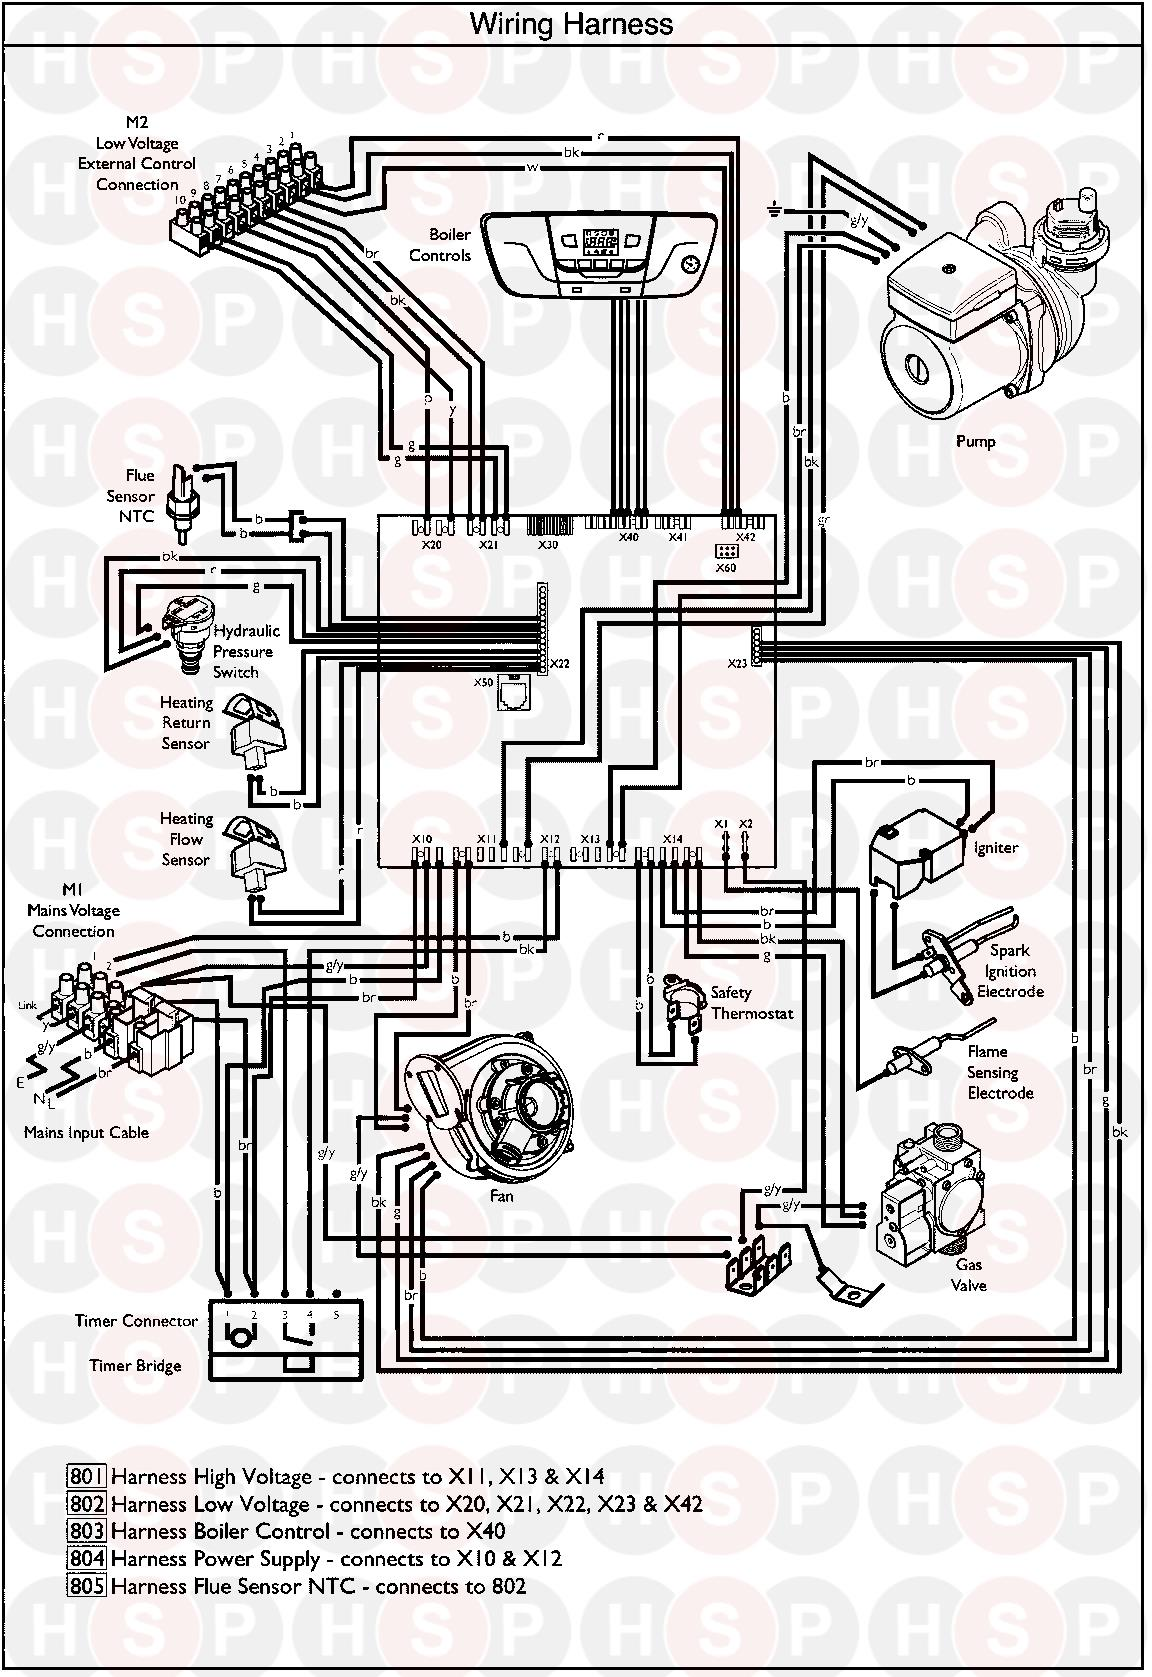 Baxi System 12 Wiring Harness Diagram Heating Spare Parts X12 Click The To Open It On A New Page